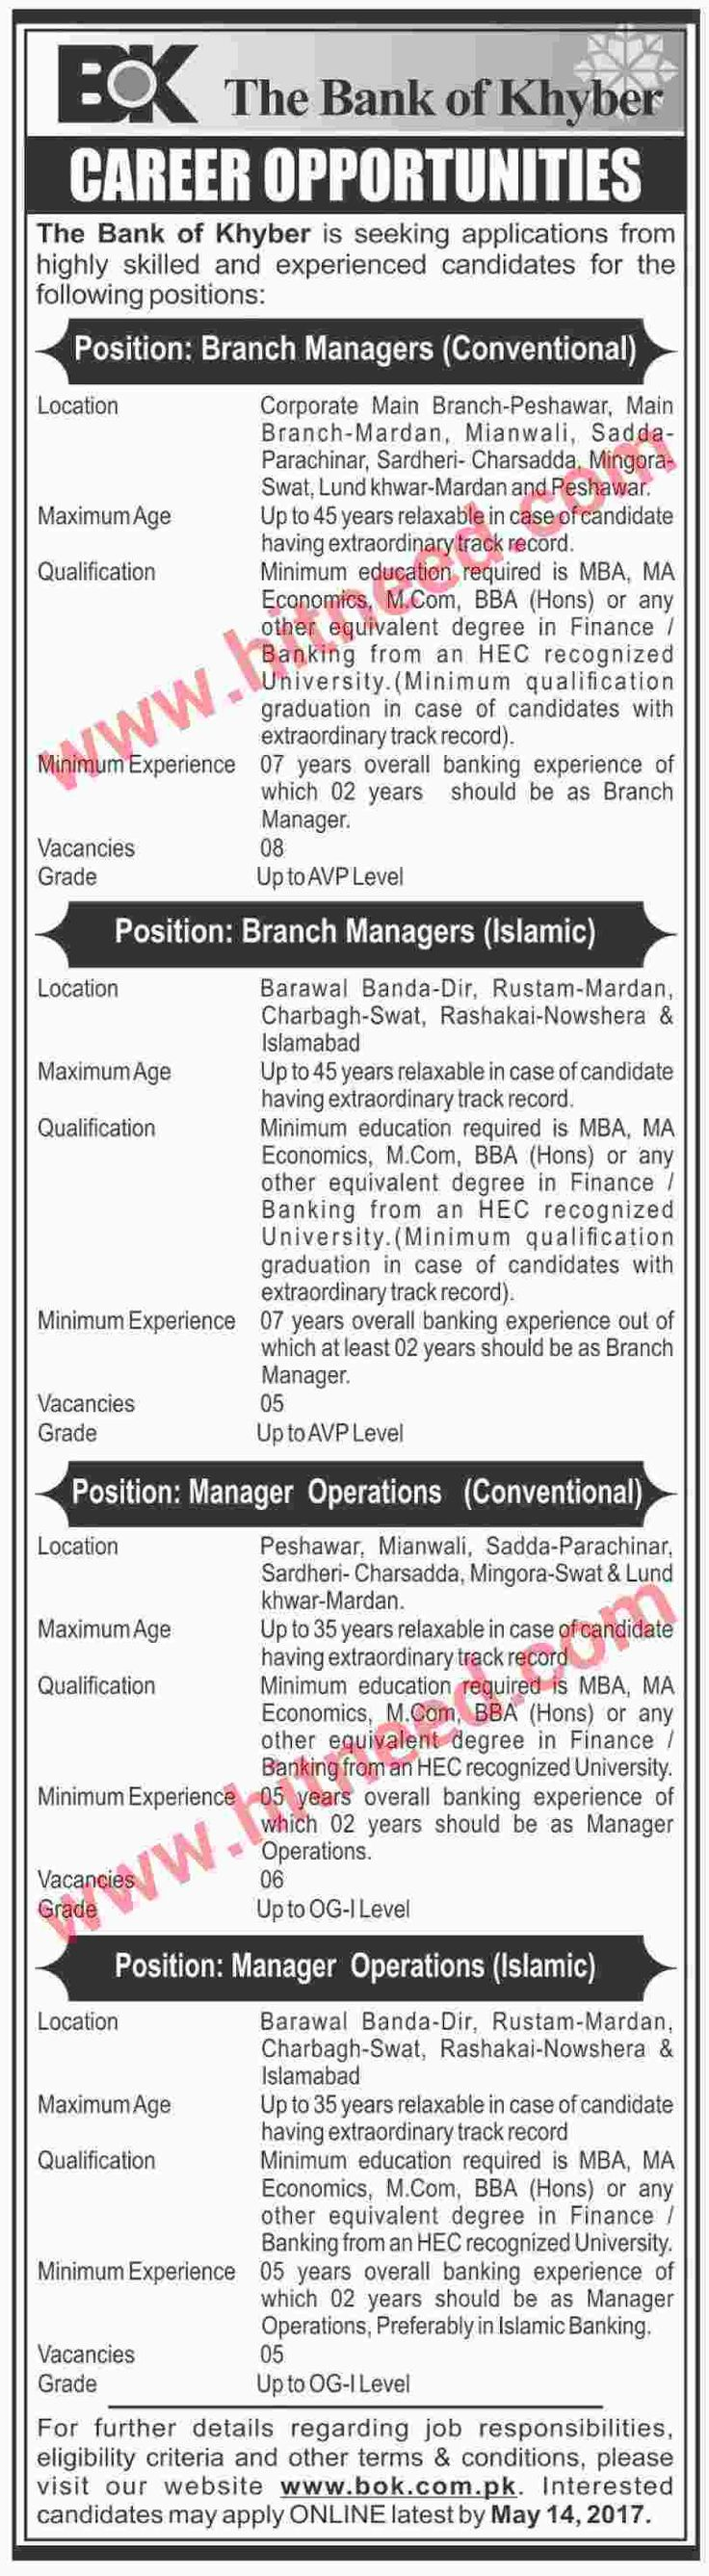 Banking job opportunities announced islamic banking and conventional banking jobs the bank of khyber announced jobs for branch manager and manager